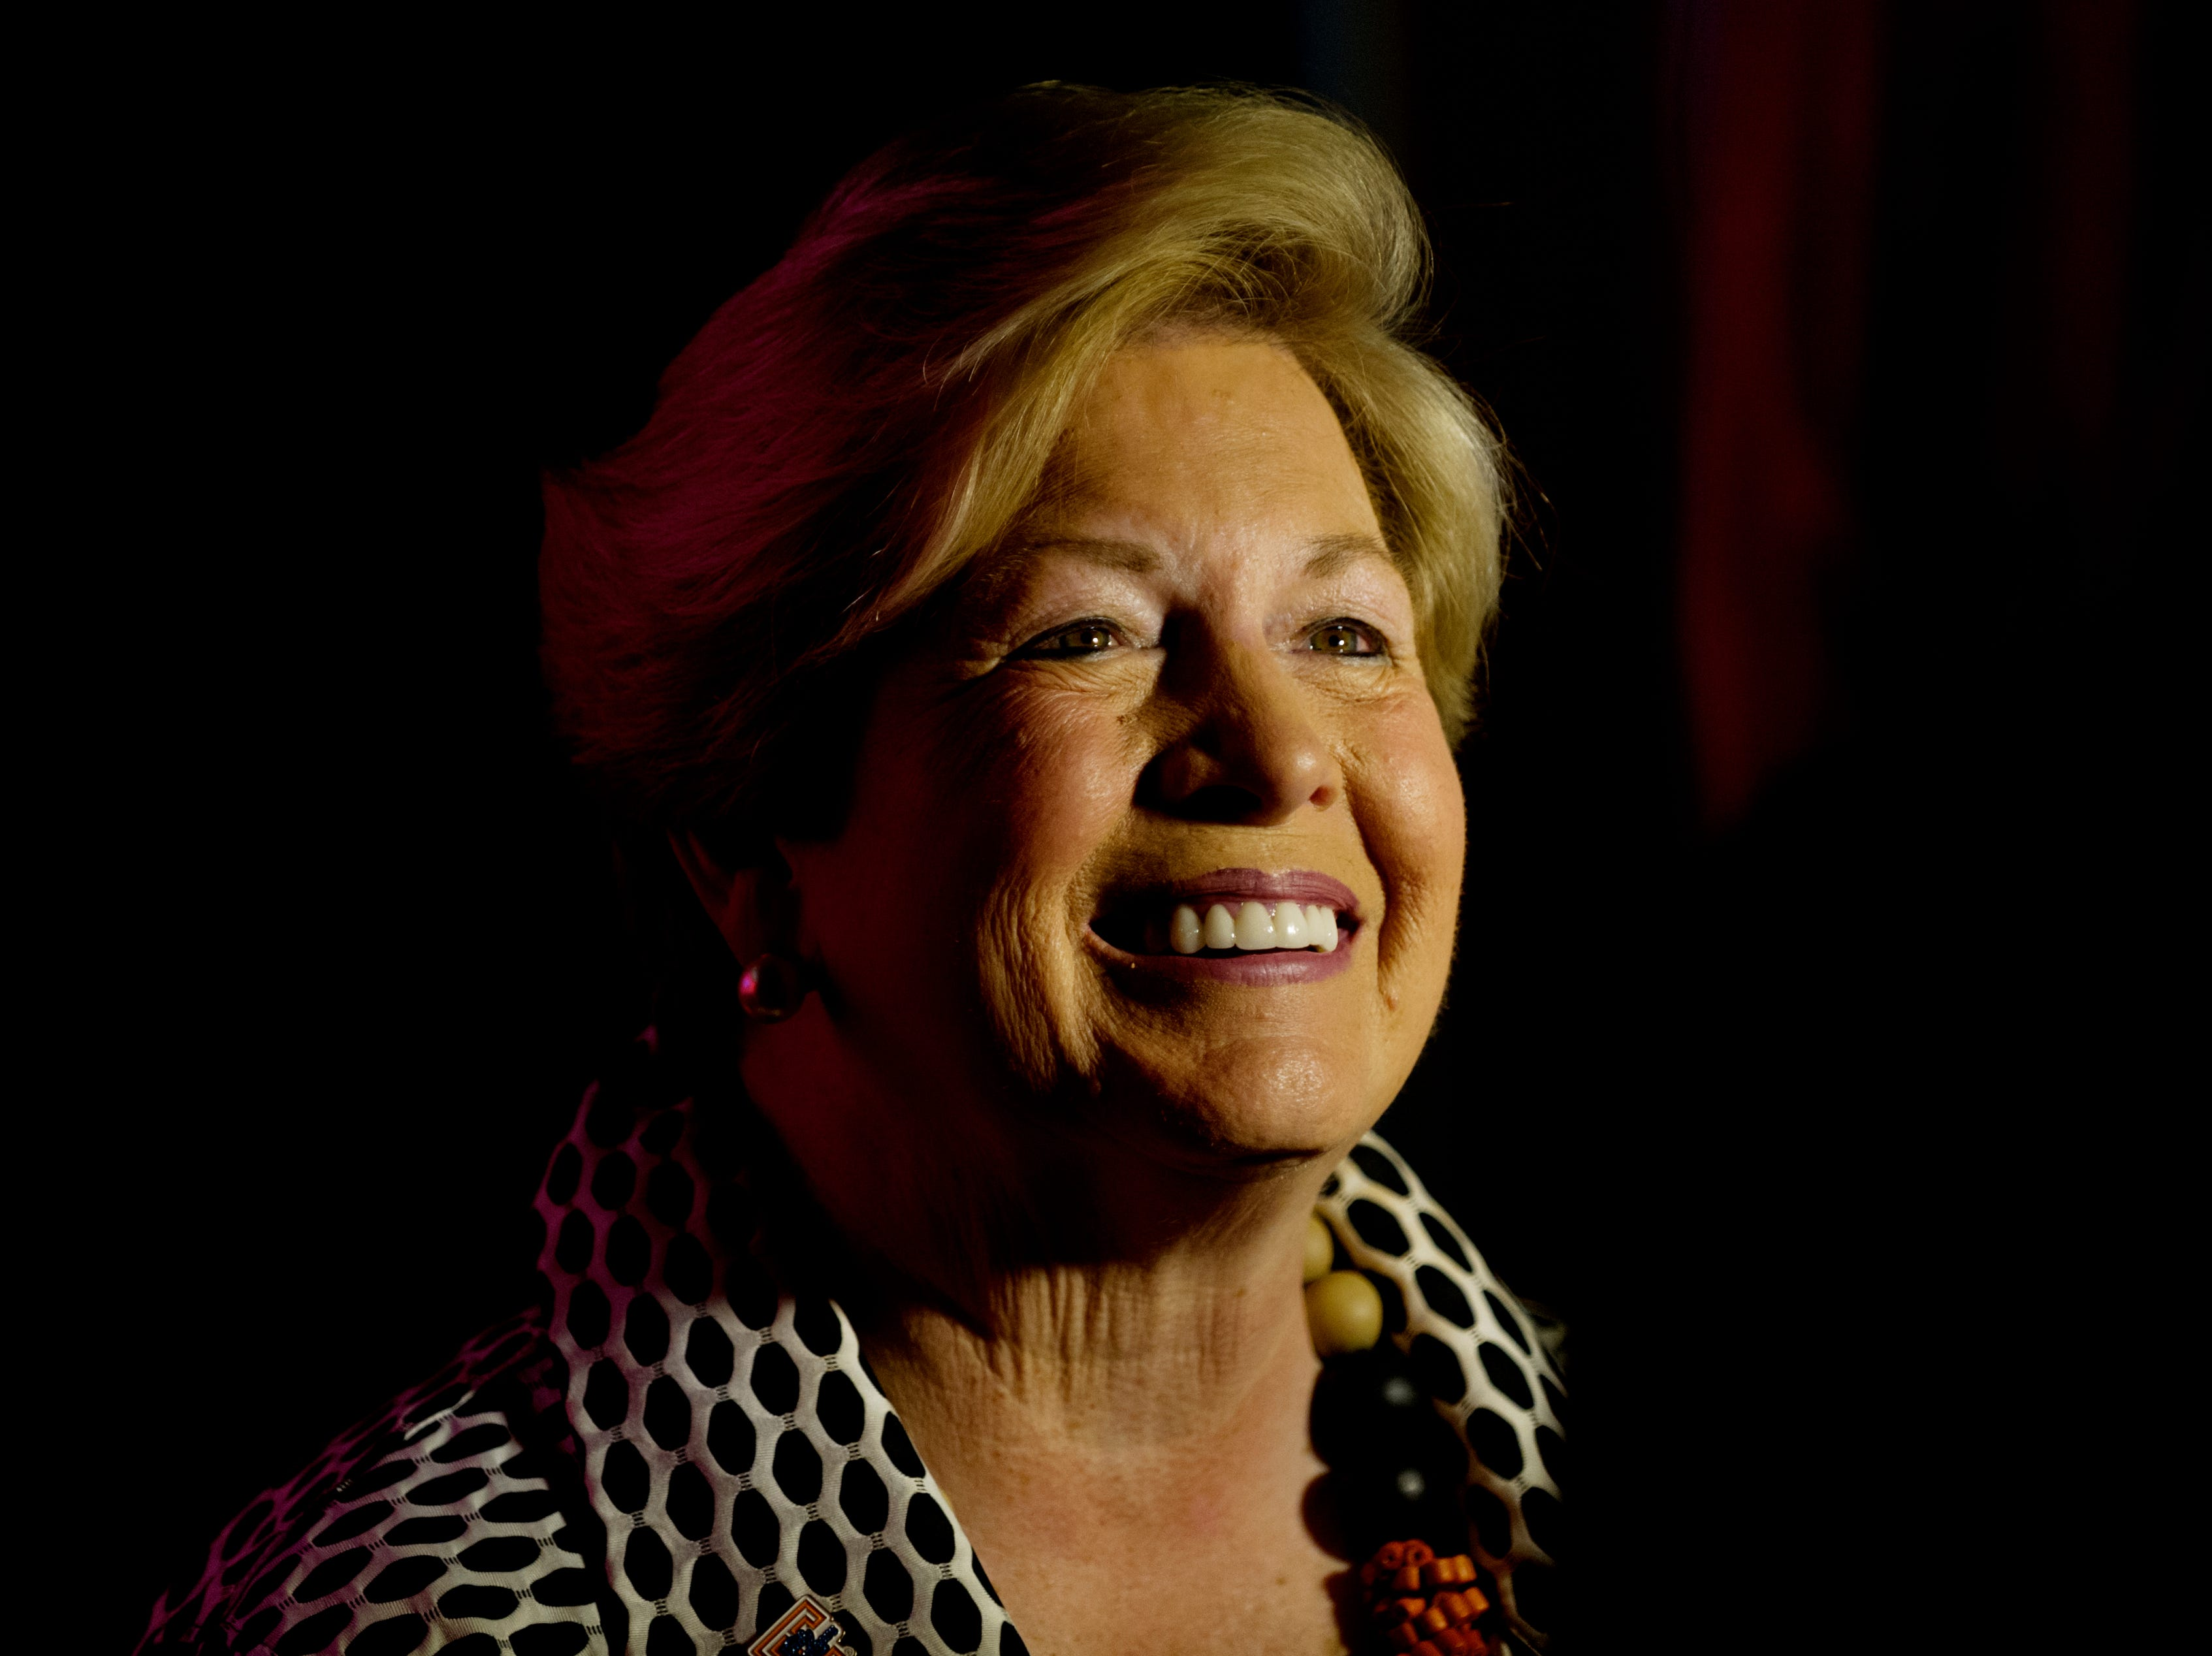 Former UT Women's Athletics Director Joan Cronan attends a press conference announcing new information concerning the Tennessee Lady Vols name, logo and brand at the Ray & Lucy Hand Digital Studio on the UT campus in Knoxville, Tennessee on Thursday, September 14, 2017.